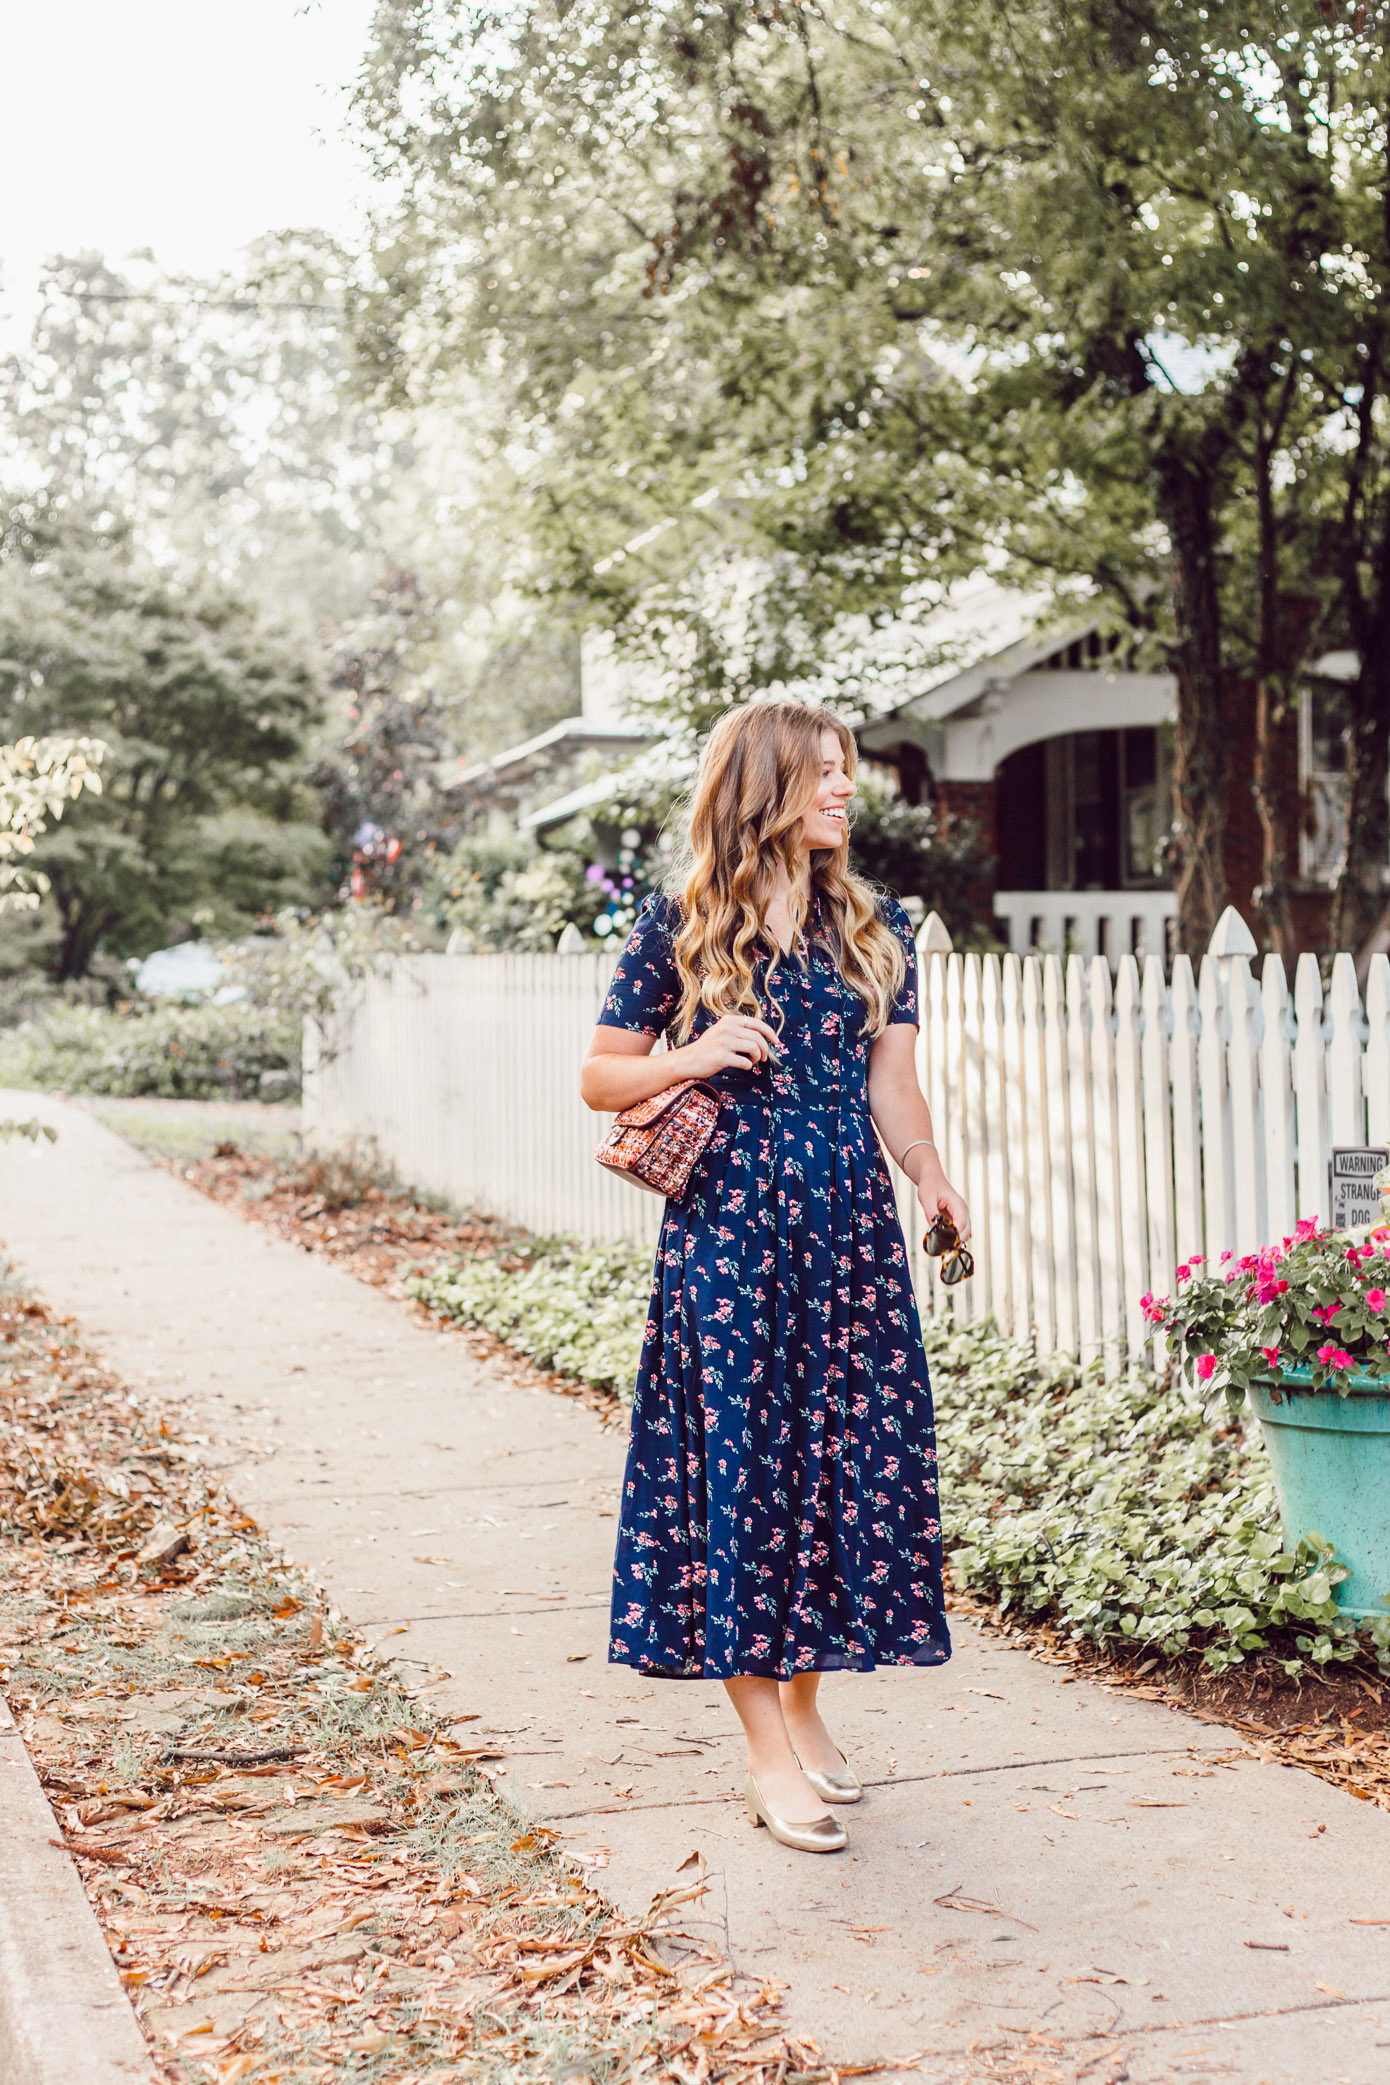 How to Savor Fall & the Dress to Wear While Doing So